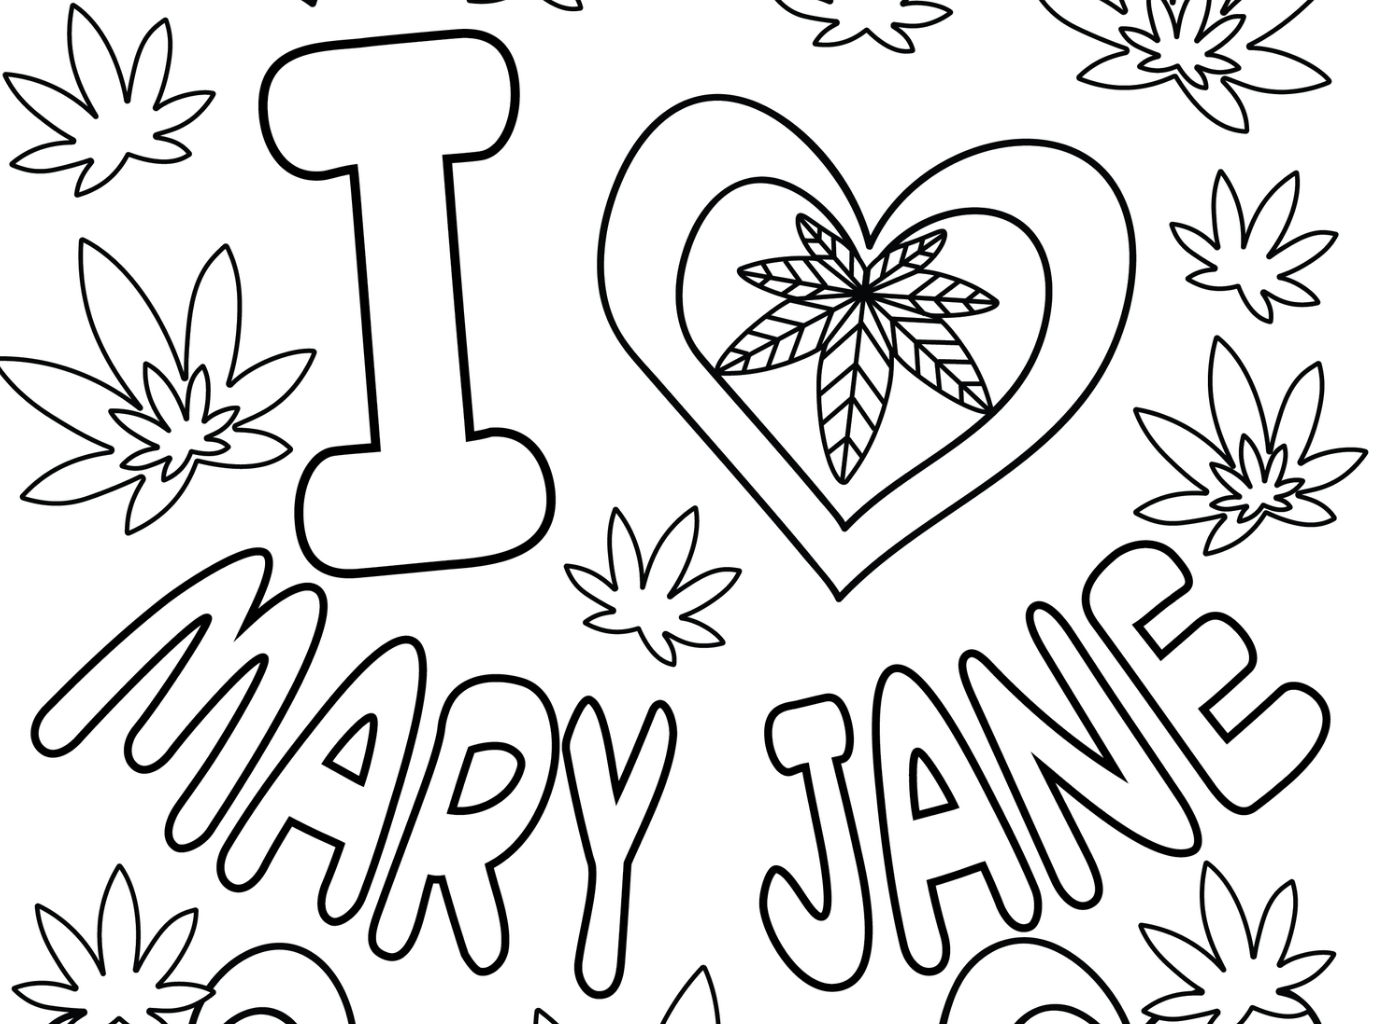 trippy pot leaf coloring pages 25 awesome photo of weed coloring pages birijuscom pages trippy leaf coloring pot